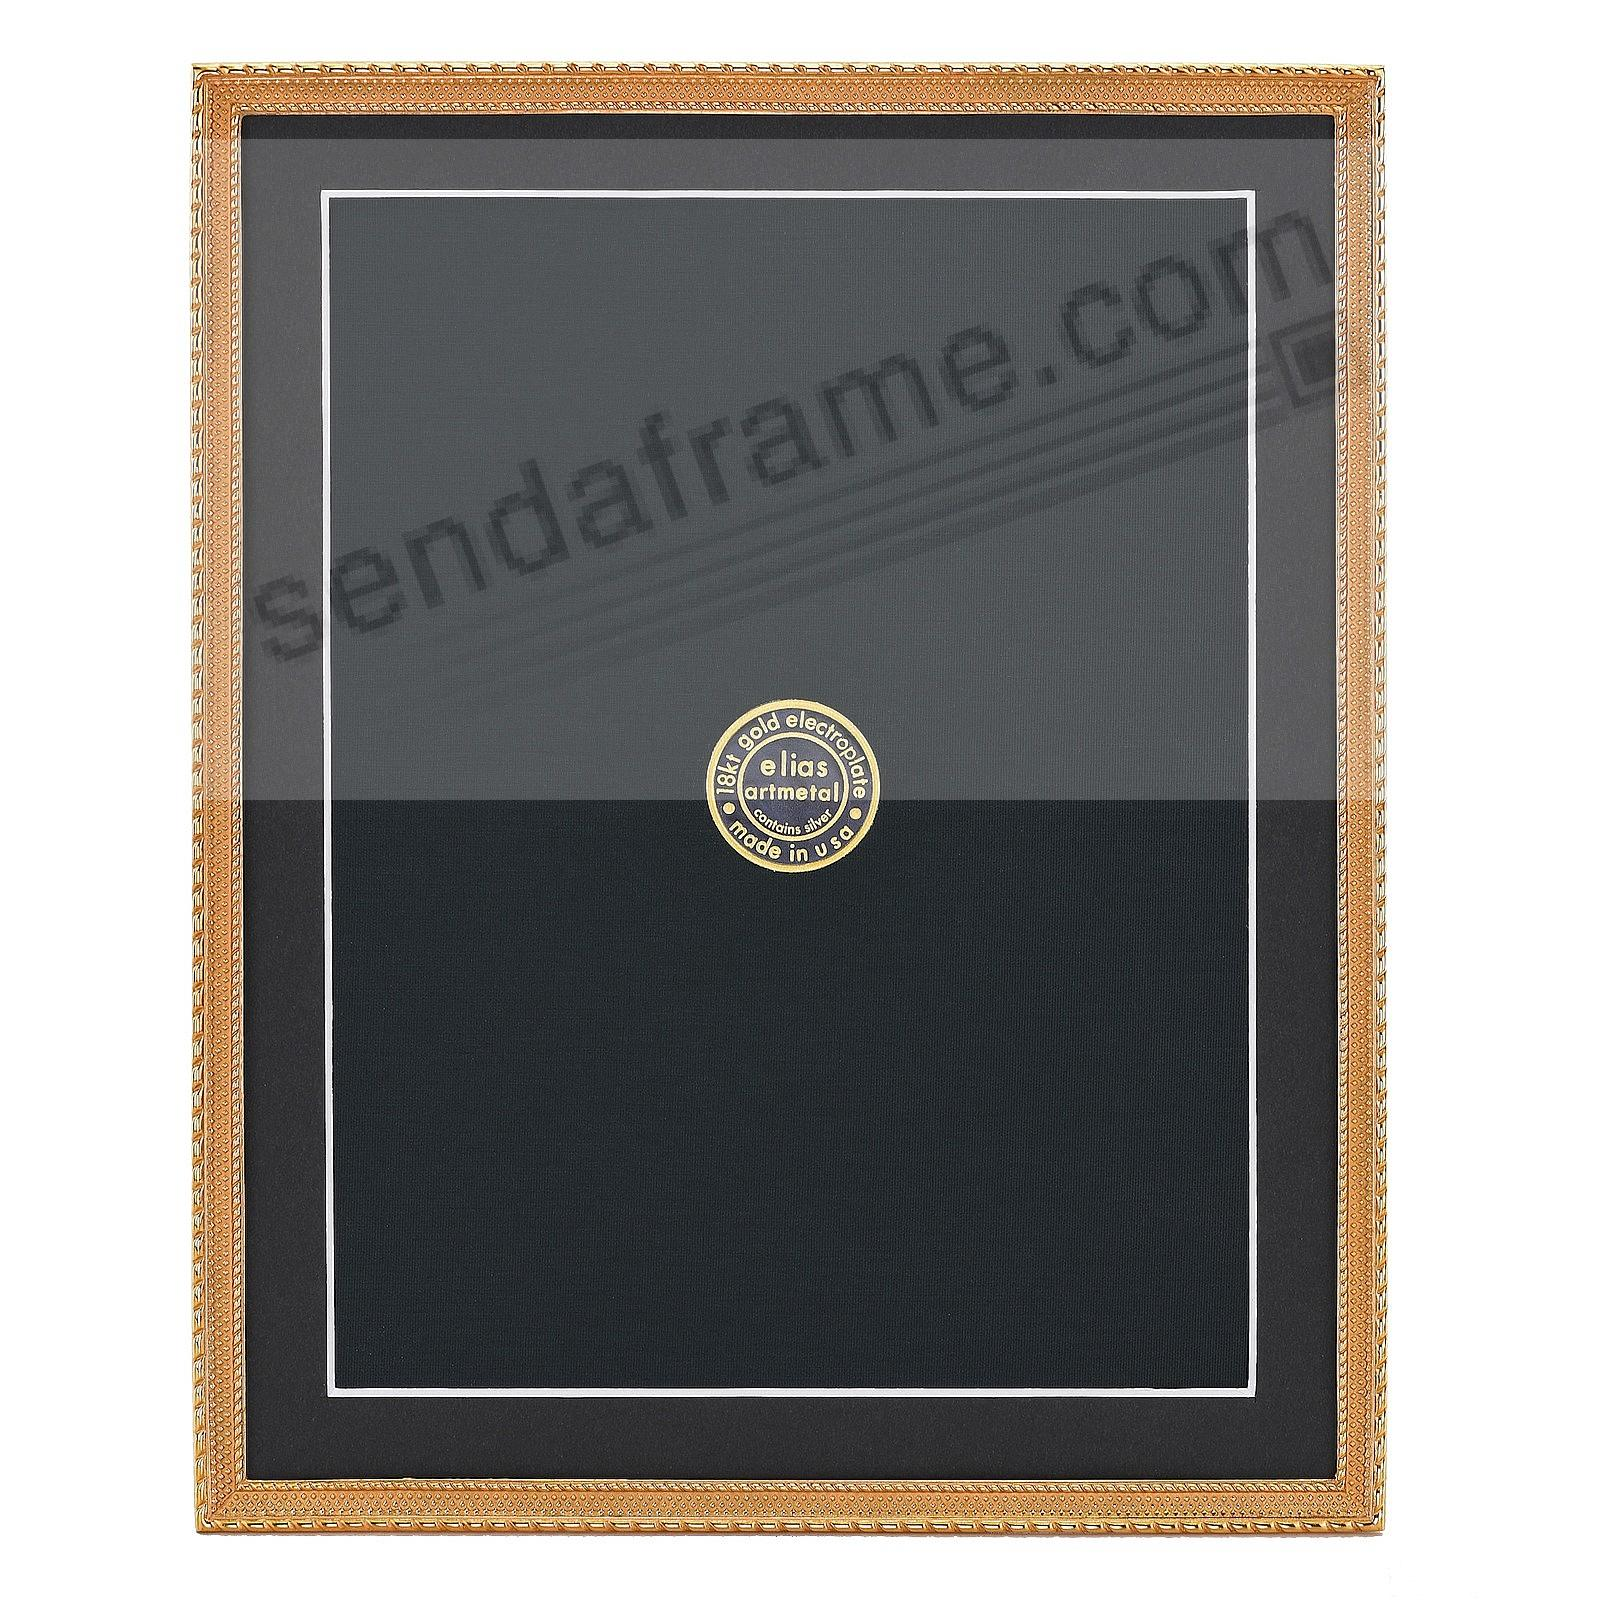 DOT-TO-DOT 18kt Gold Vermeil over fine Pewter 8x10/7x9 frame by Elias Artmetal®